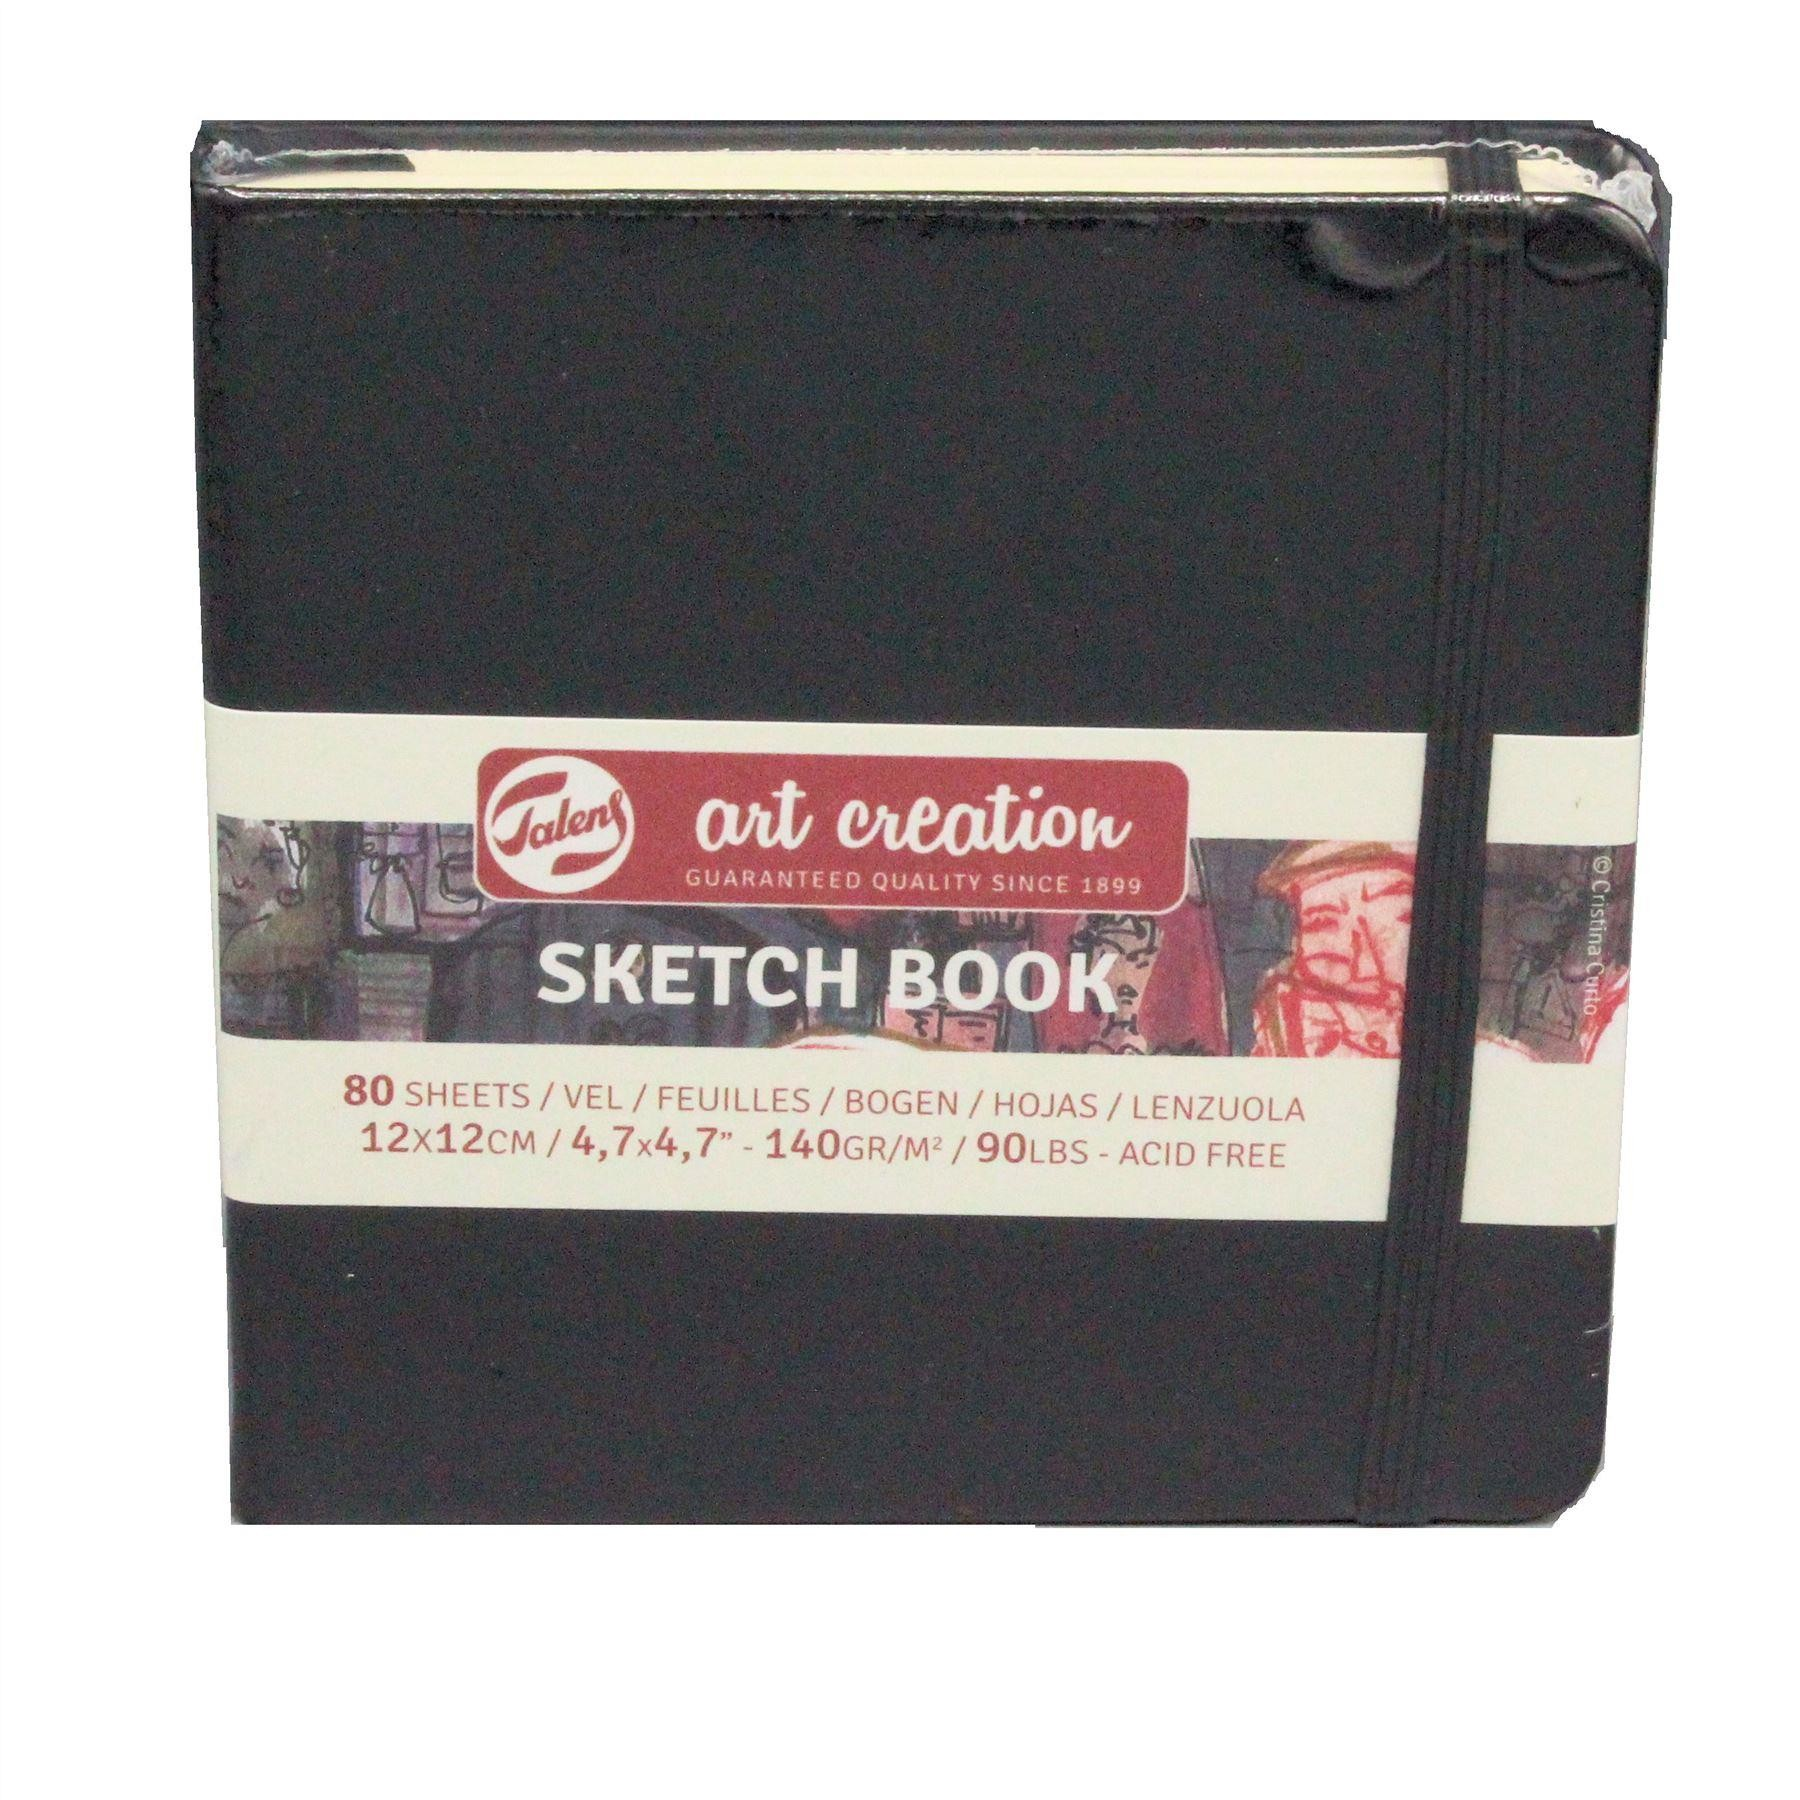 Talens sketch book hard back drawing paper pad 12x 12cm 80 sheets 140gsm